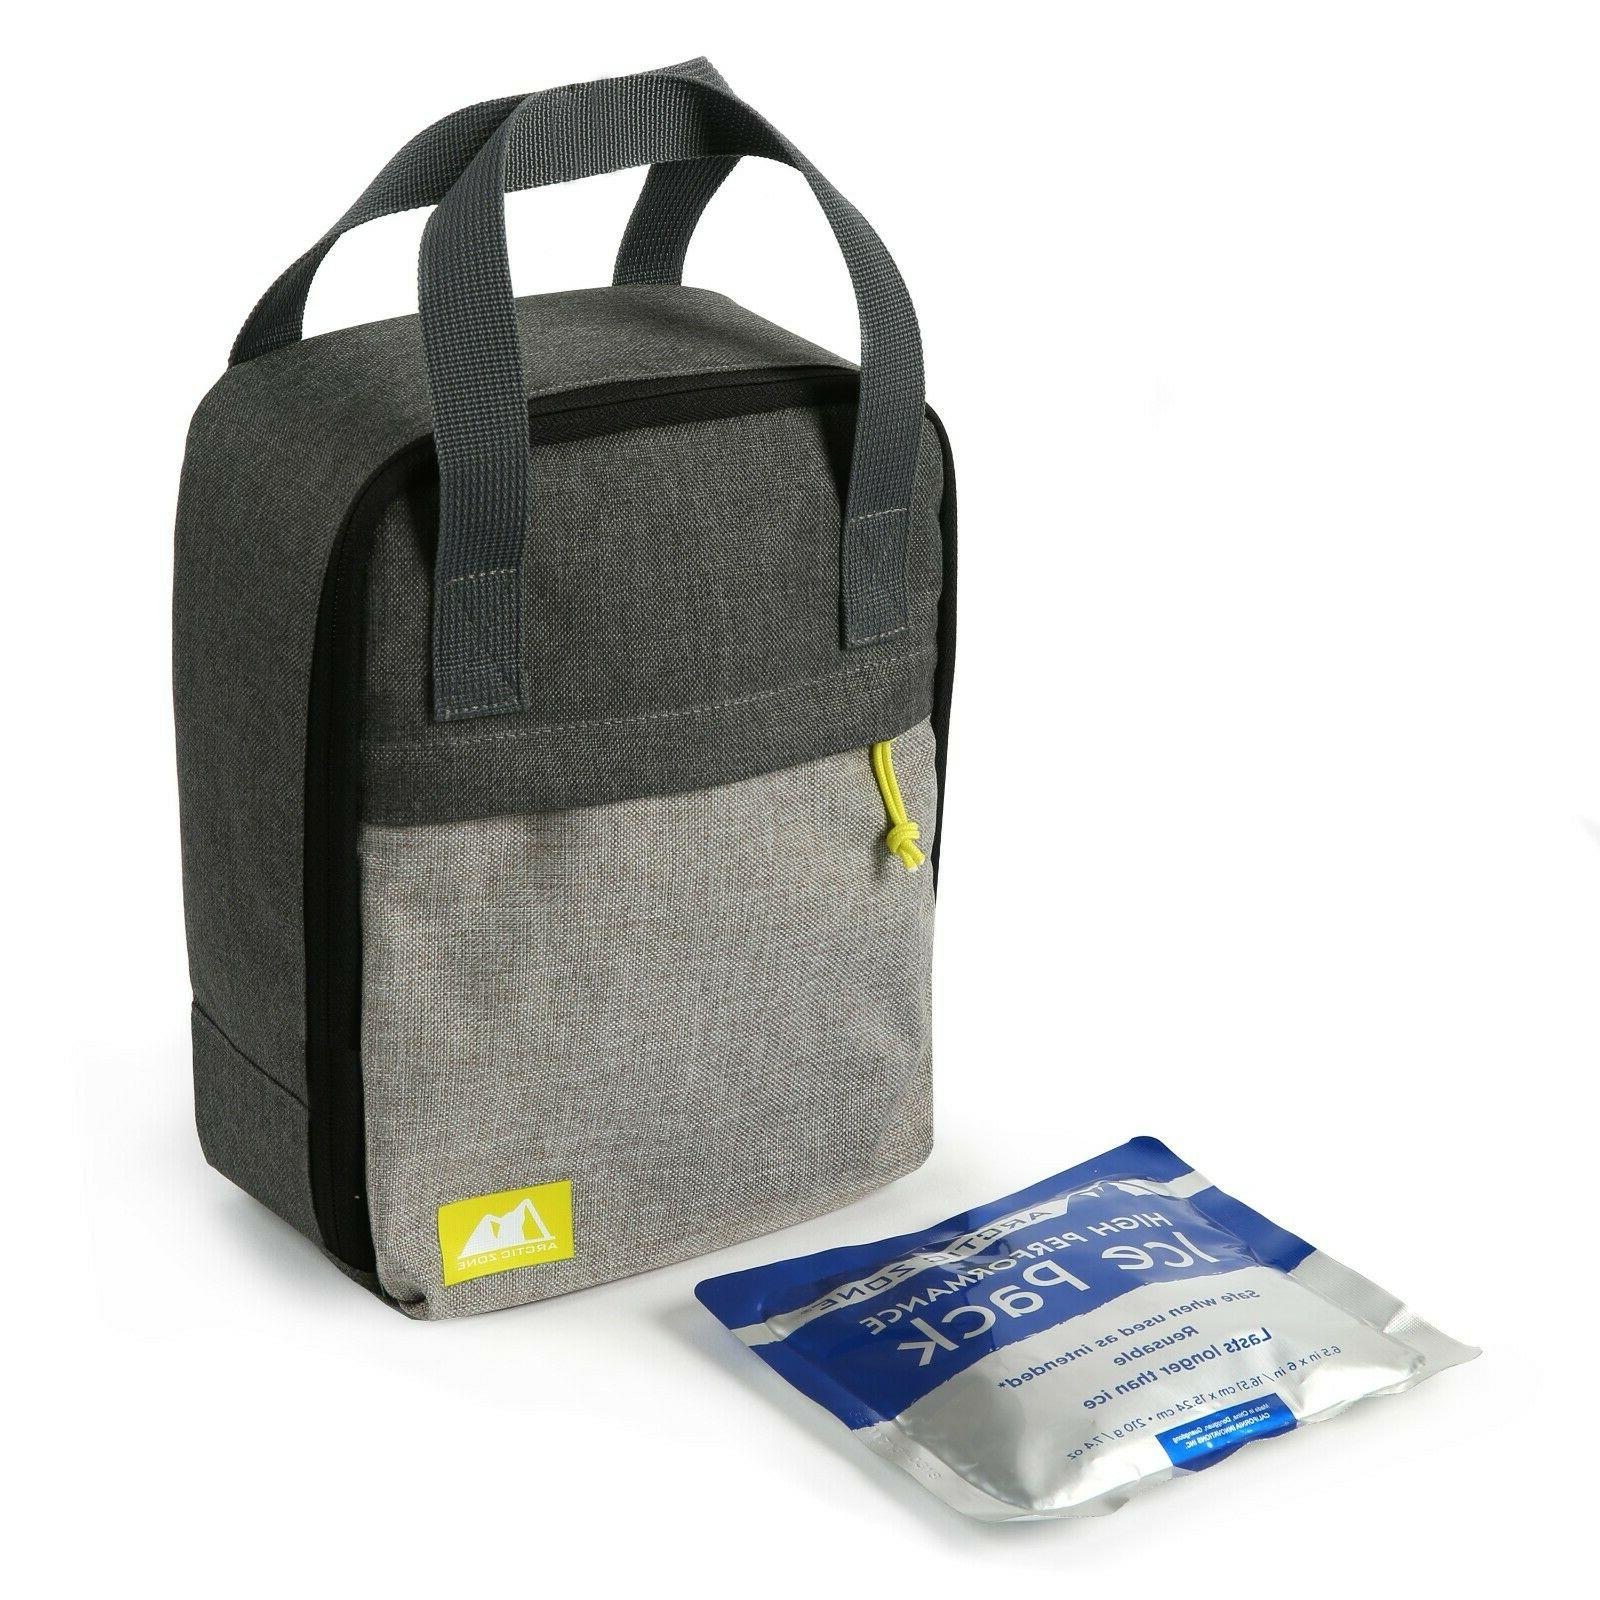 classic upright lunch box grey color brand